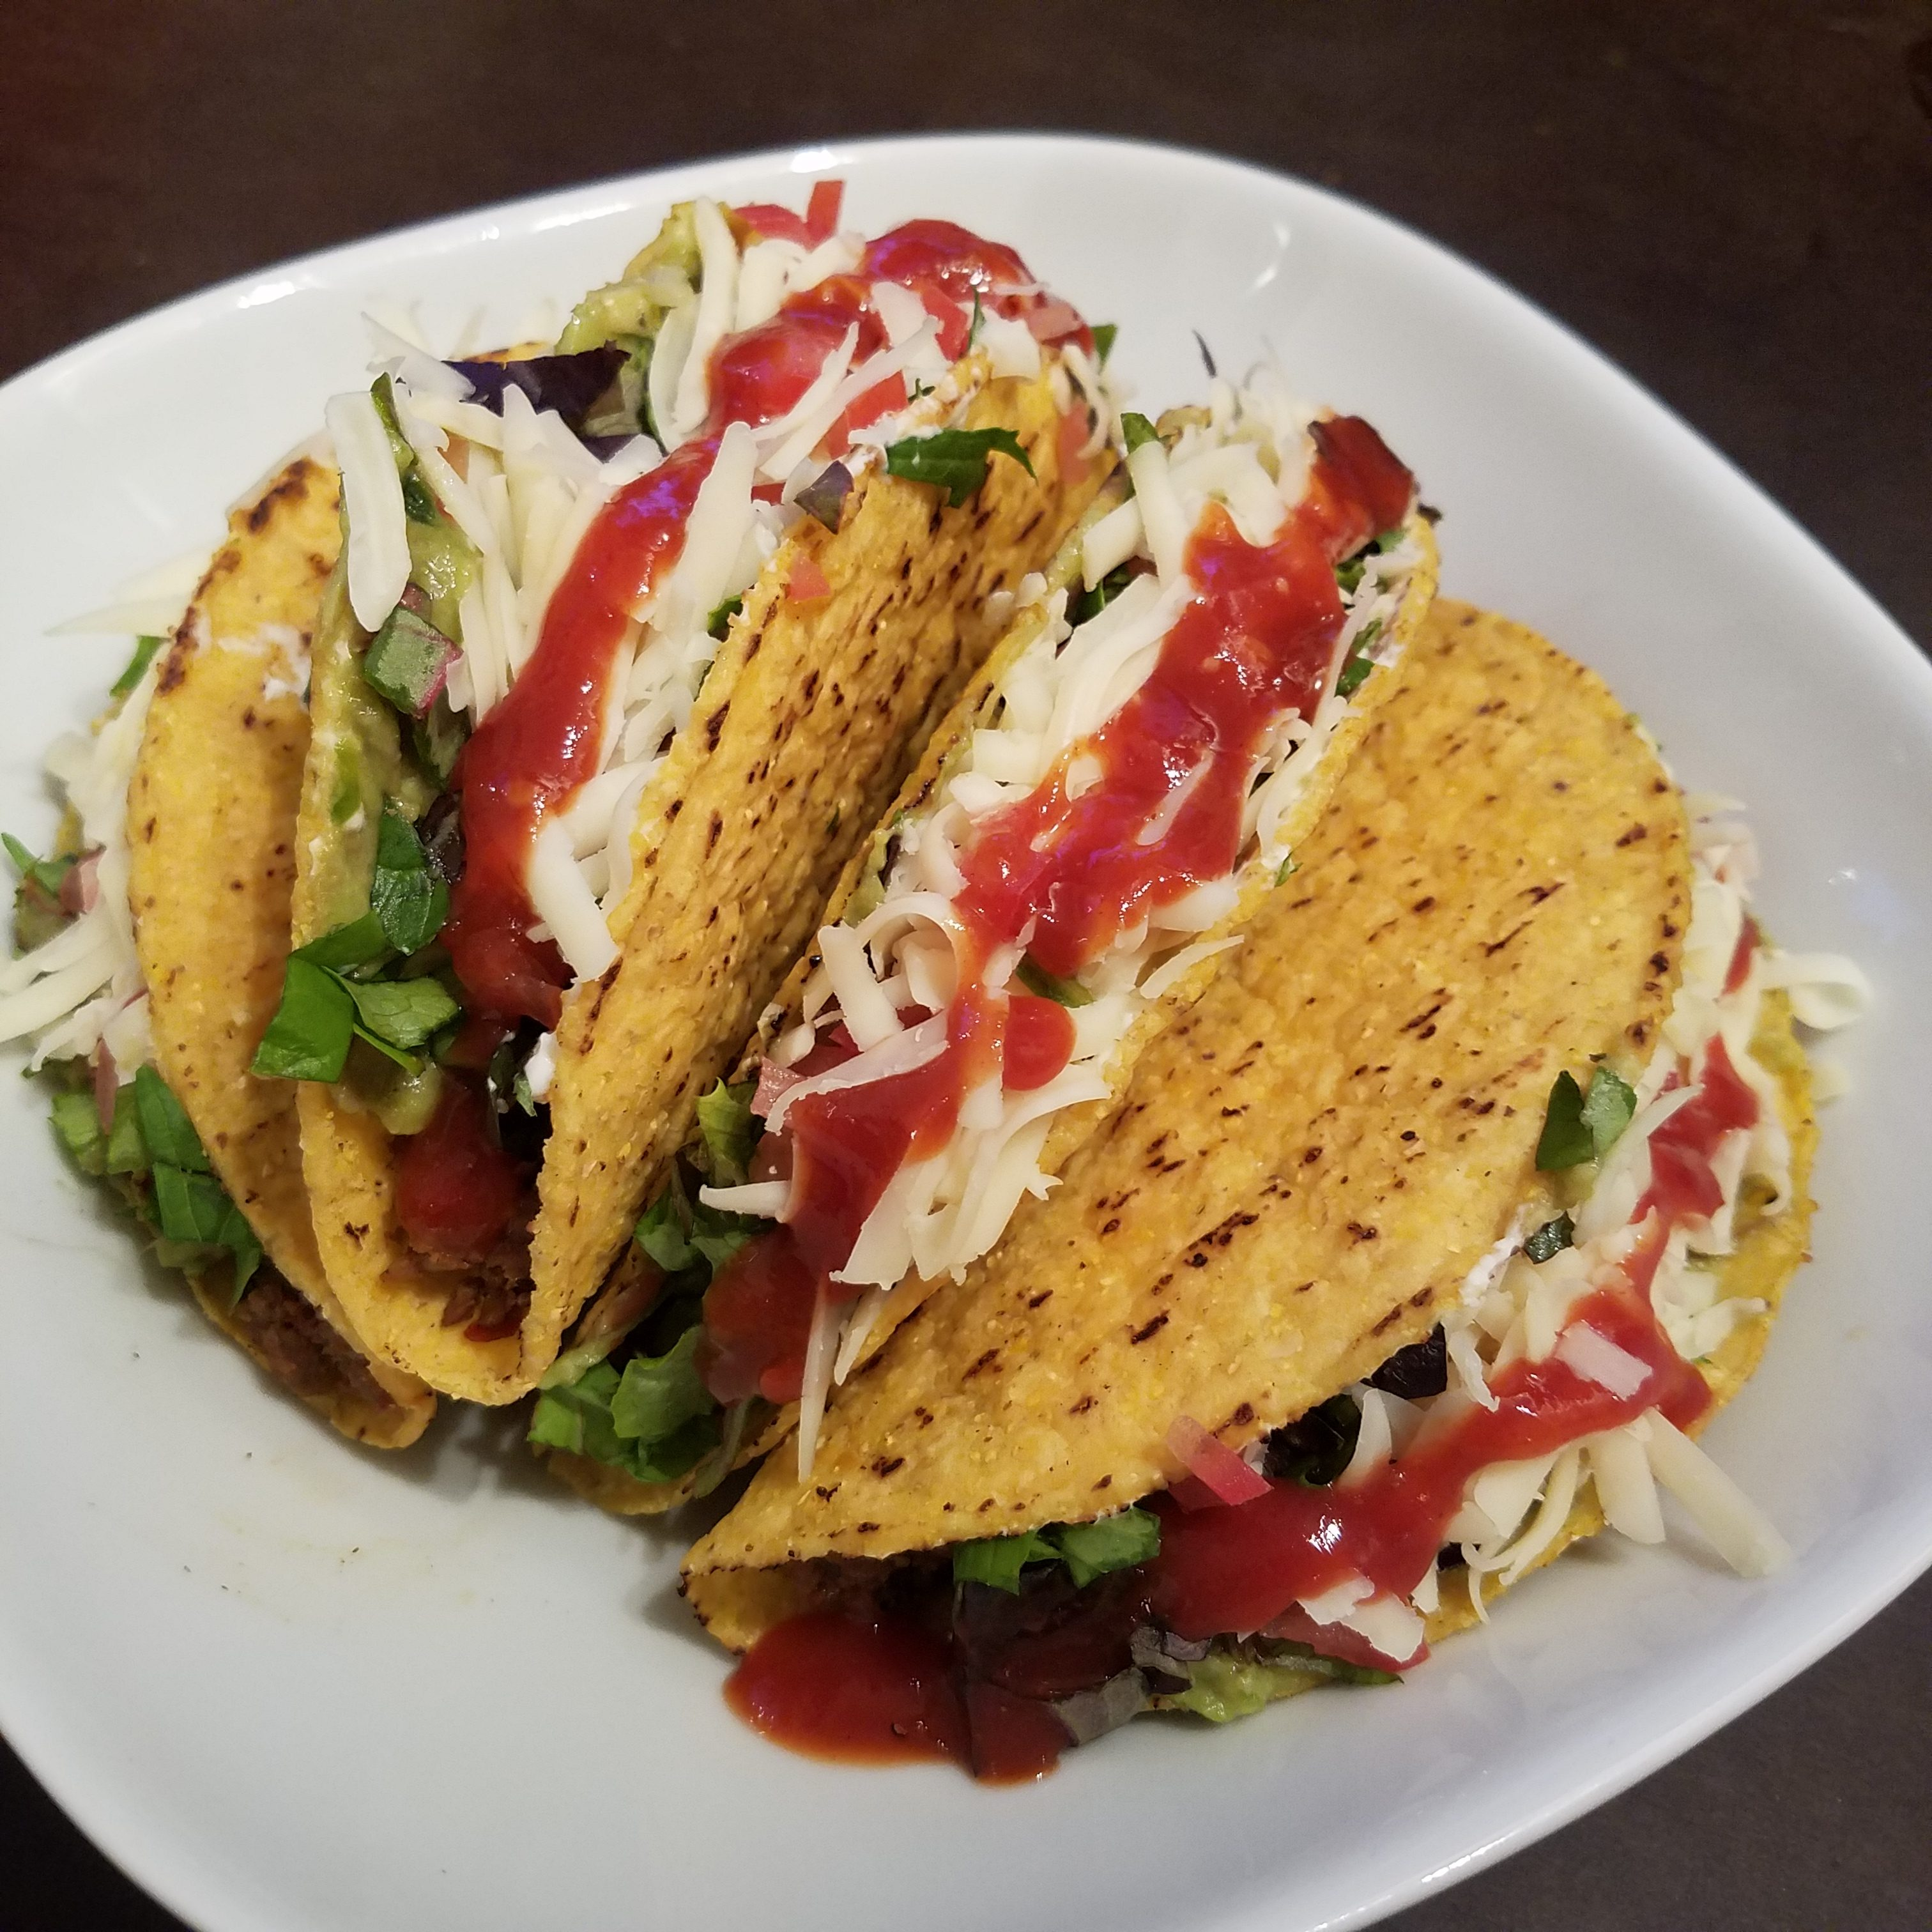 Loaded tacos with Lettuce Tomatoes, cheese, sour cream, guacamole, taco sauce